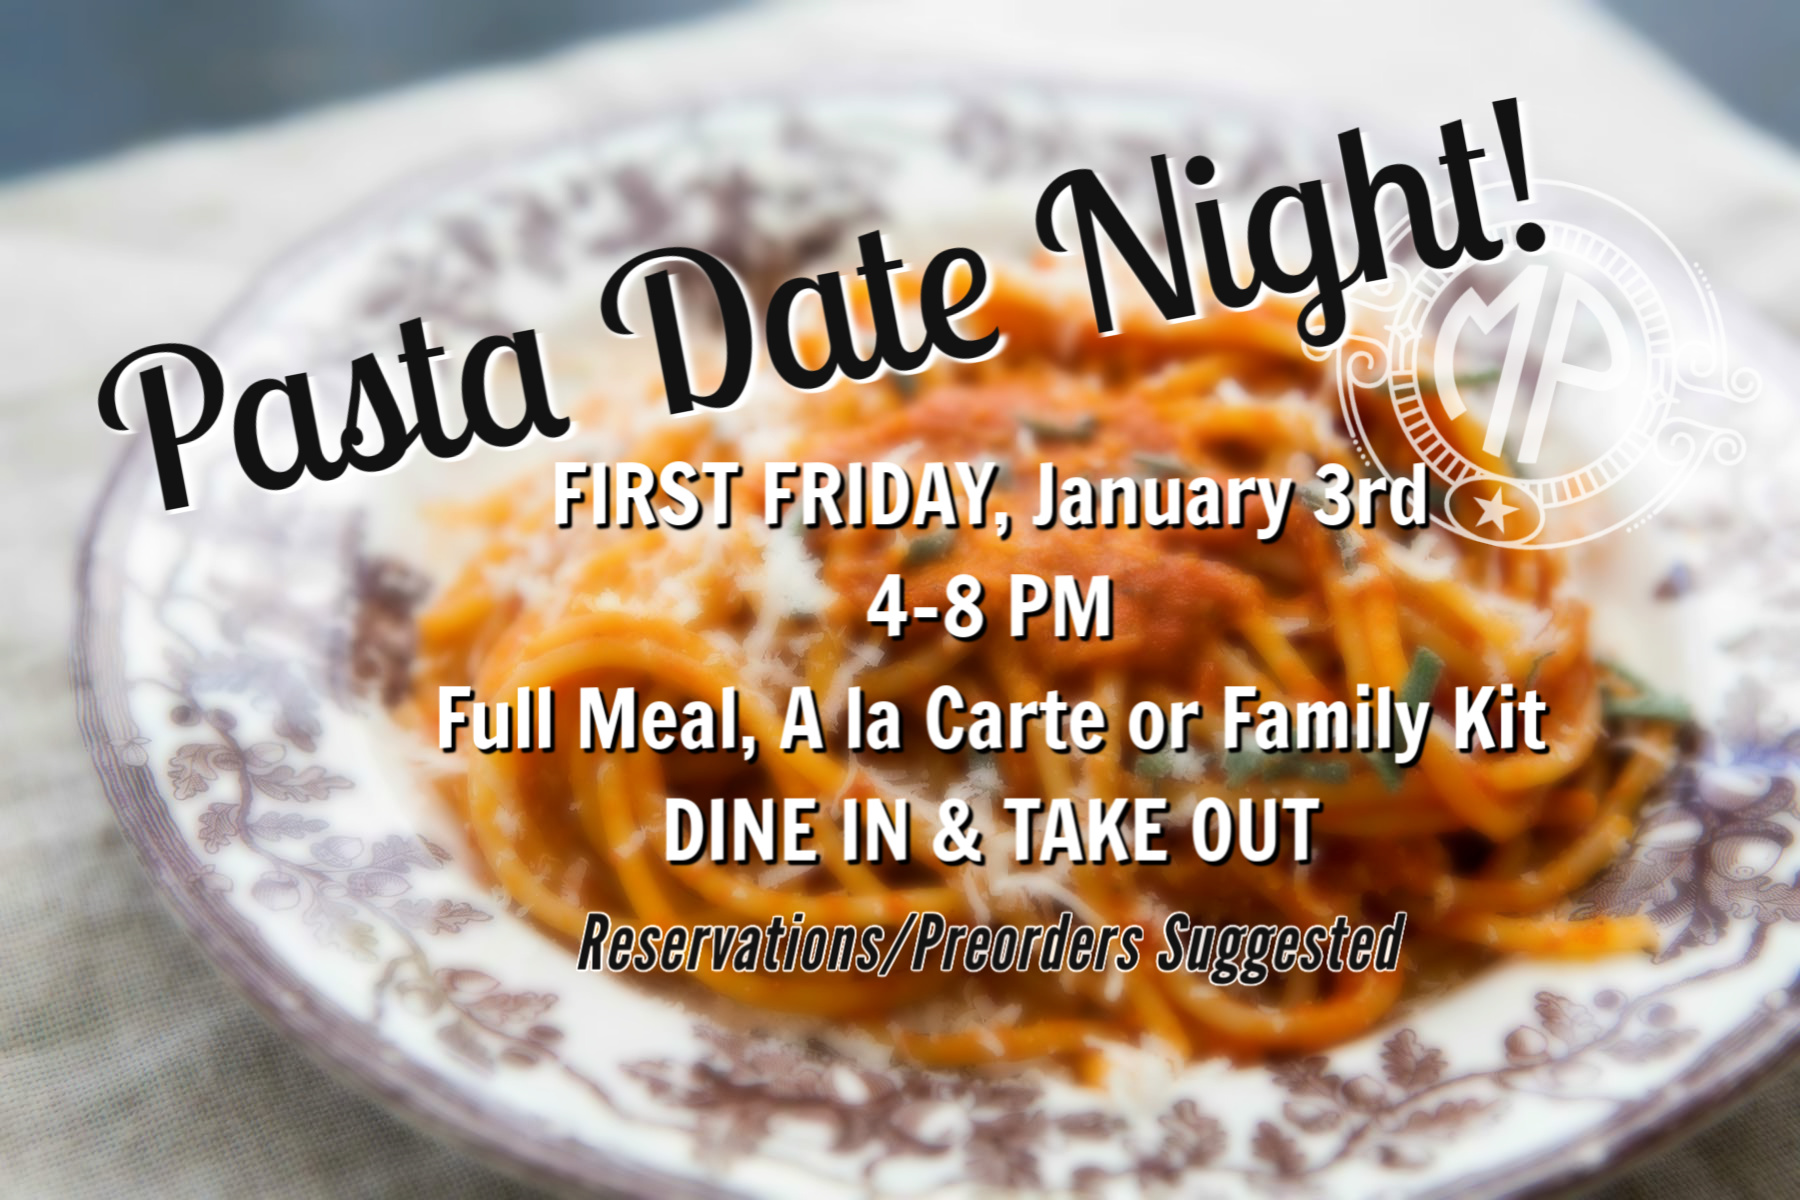 First Friday Pasta Date Night